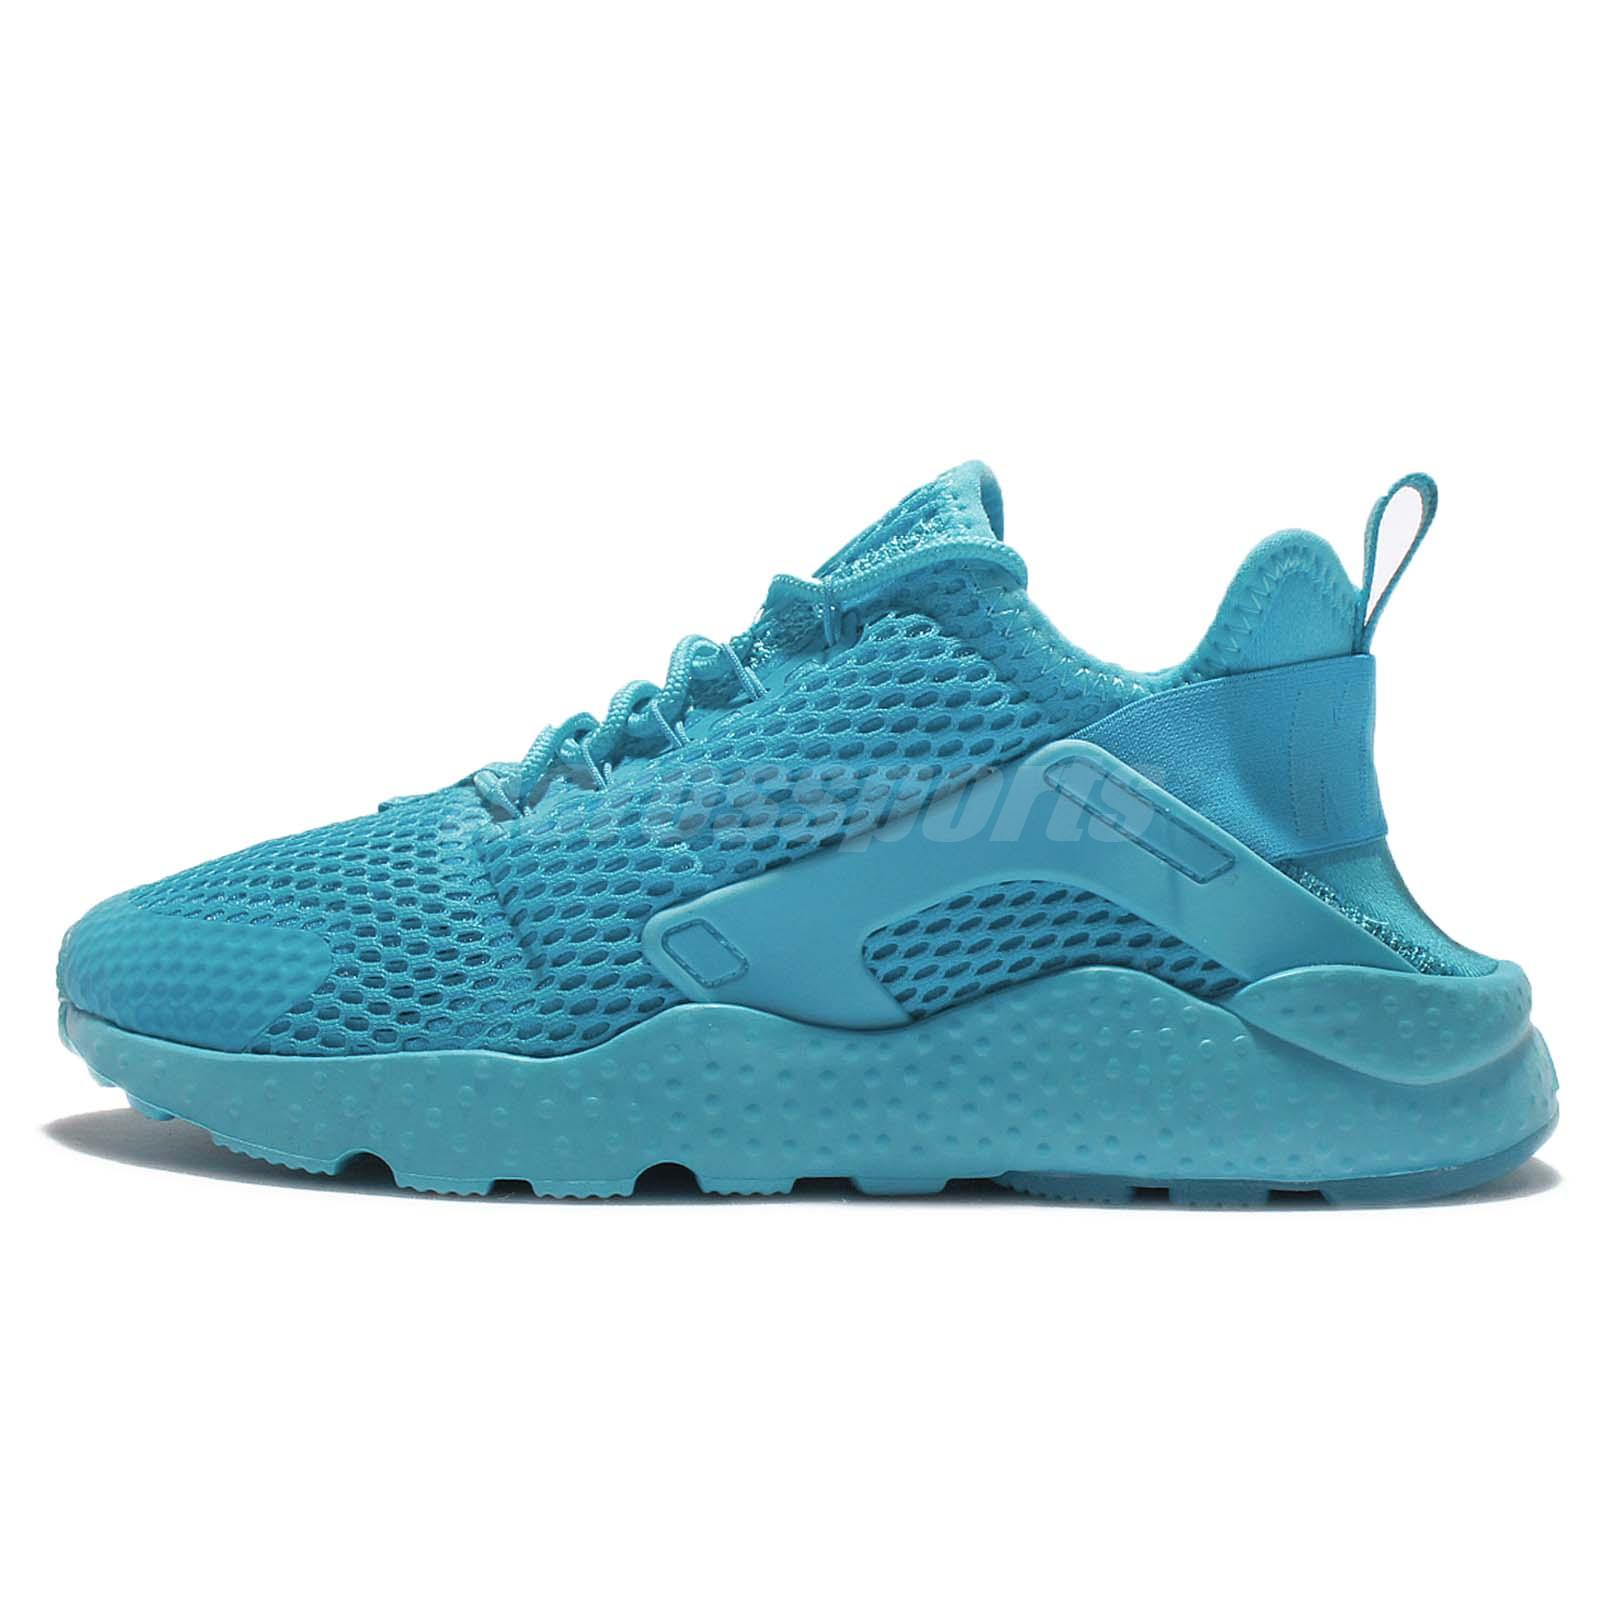 Wmns Nike Air Huarache Run Ultra BR Breeze Gamma Blue Womens Running  833292-400 f1ac479dfde6